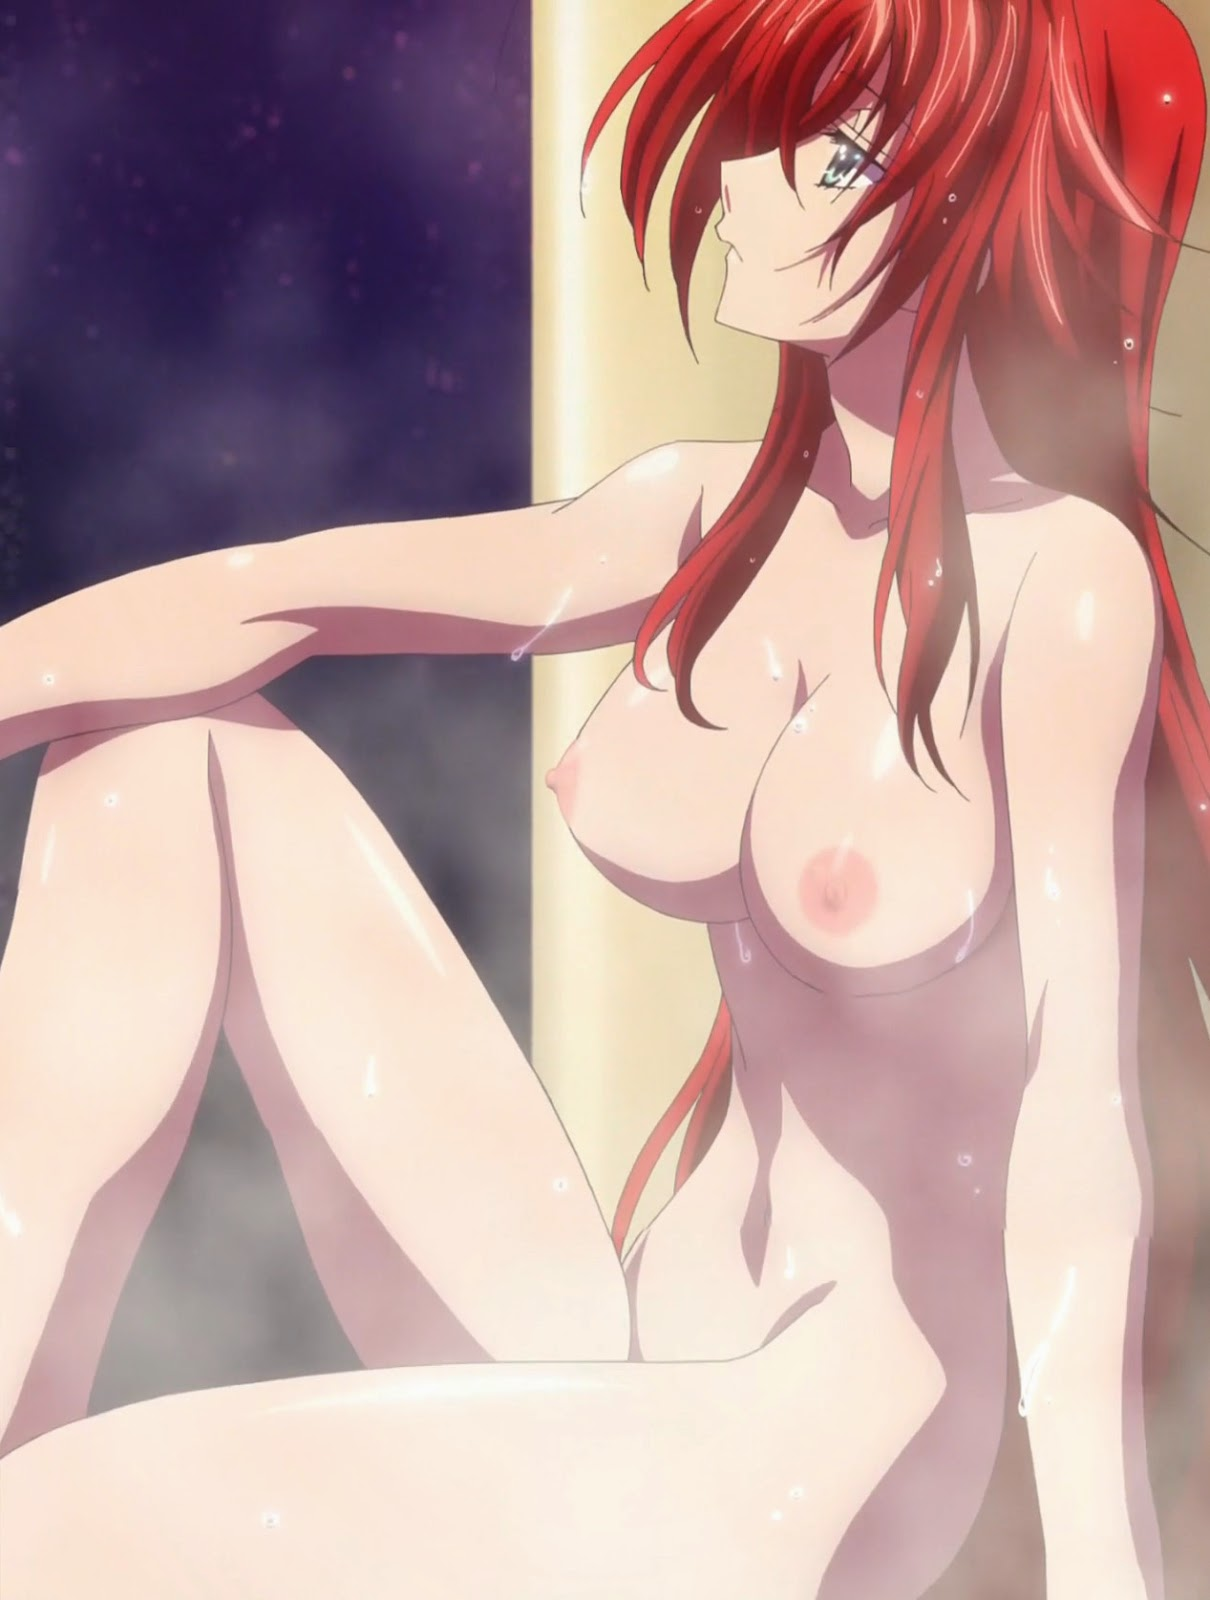 High School DxD BorN - Episode 1 - Steamy Rias